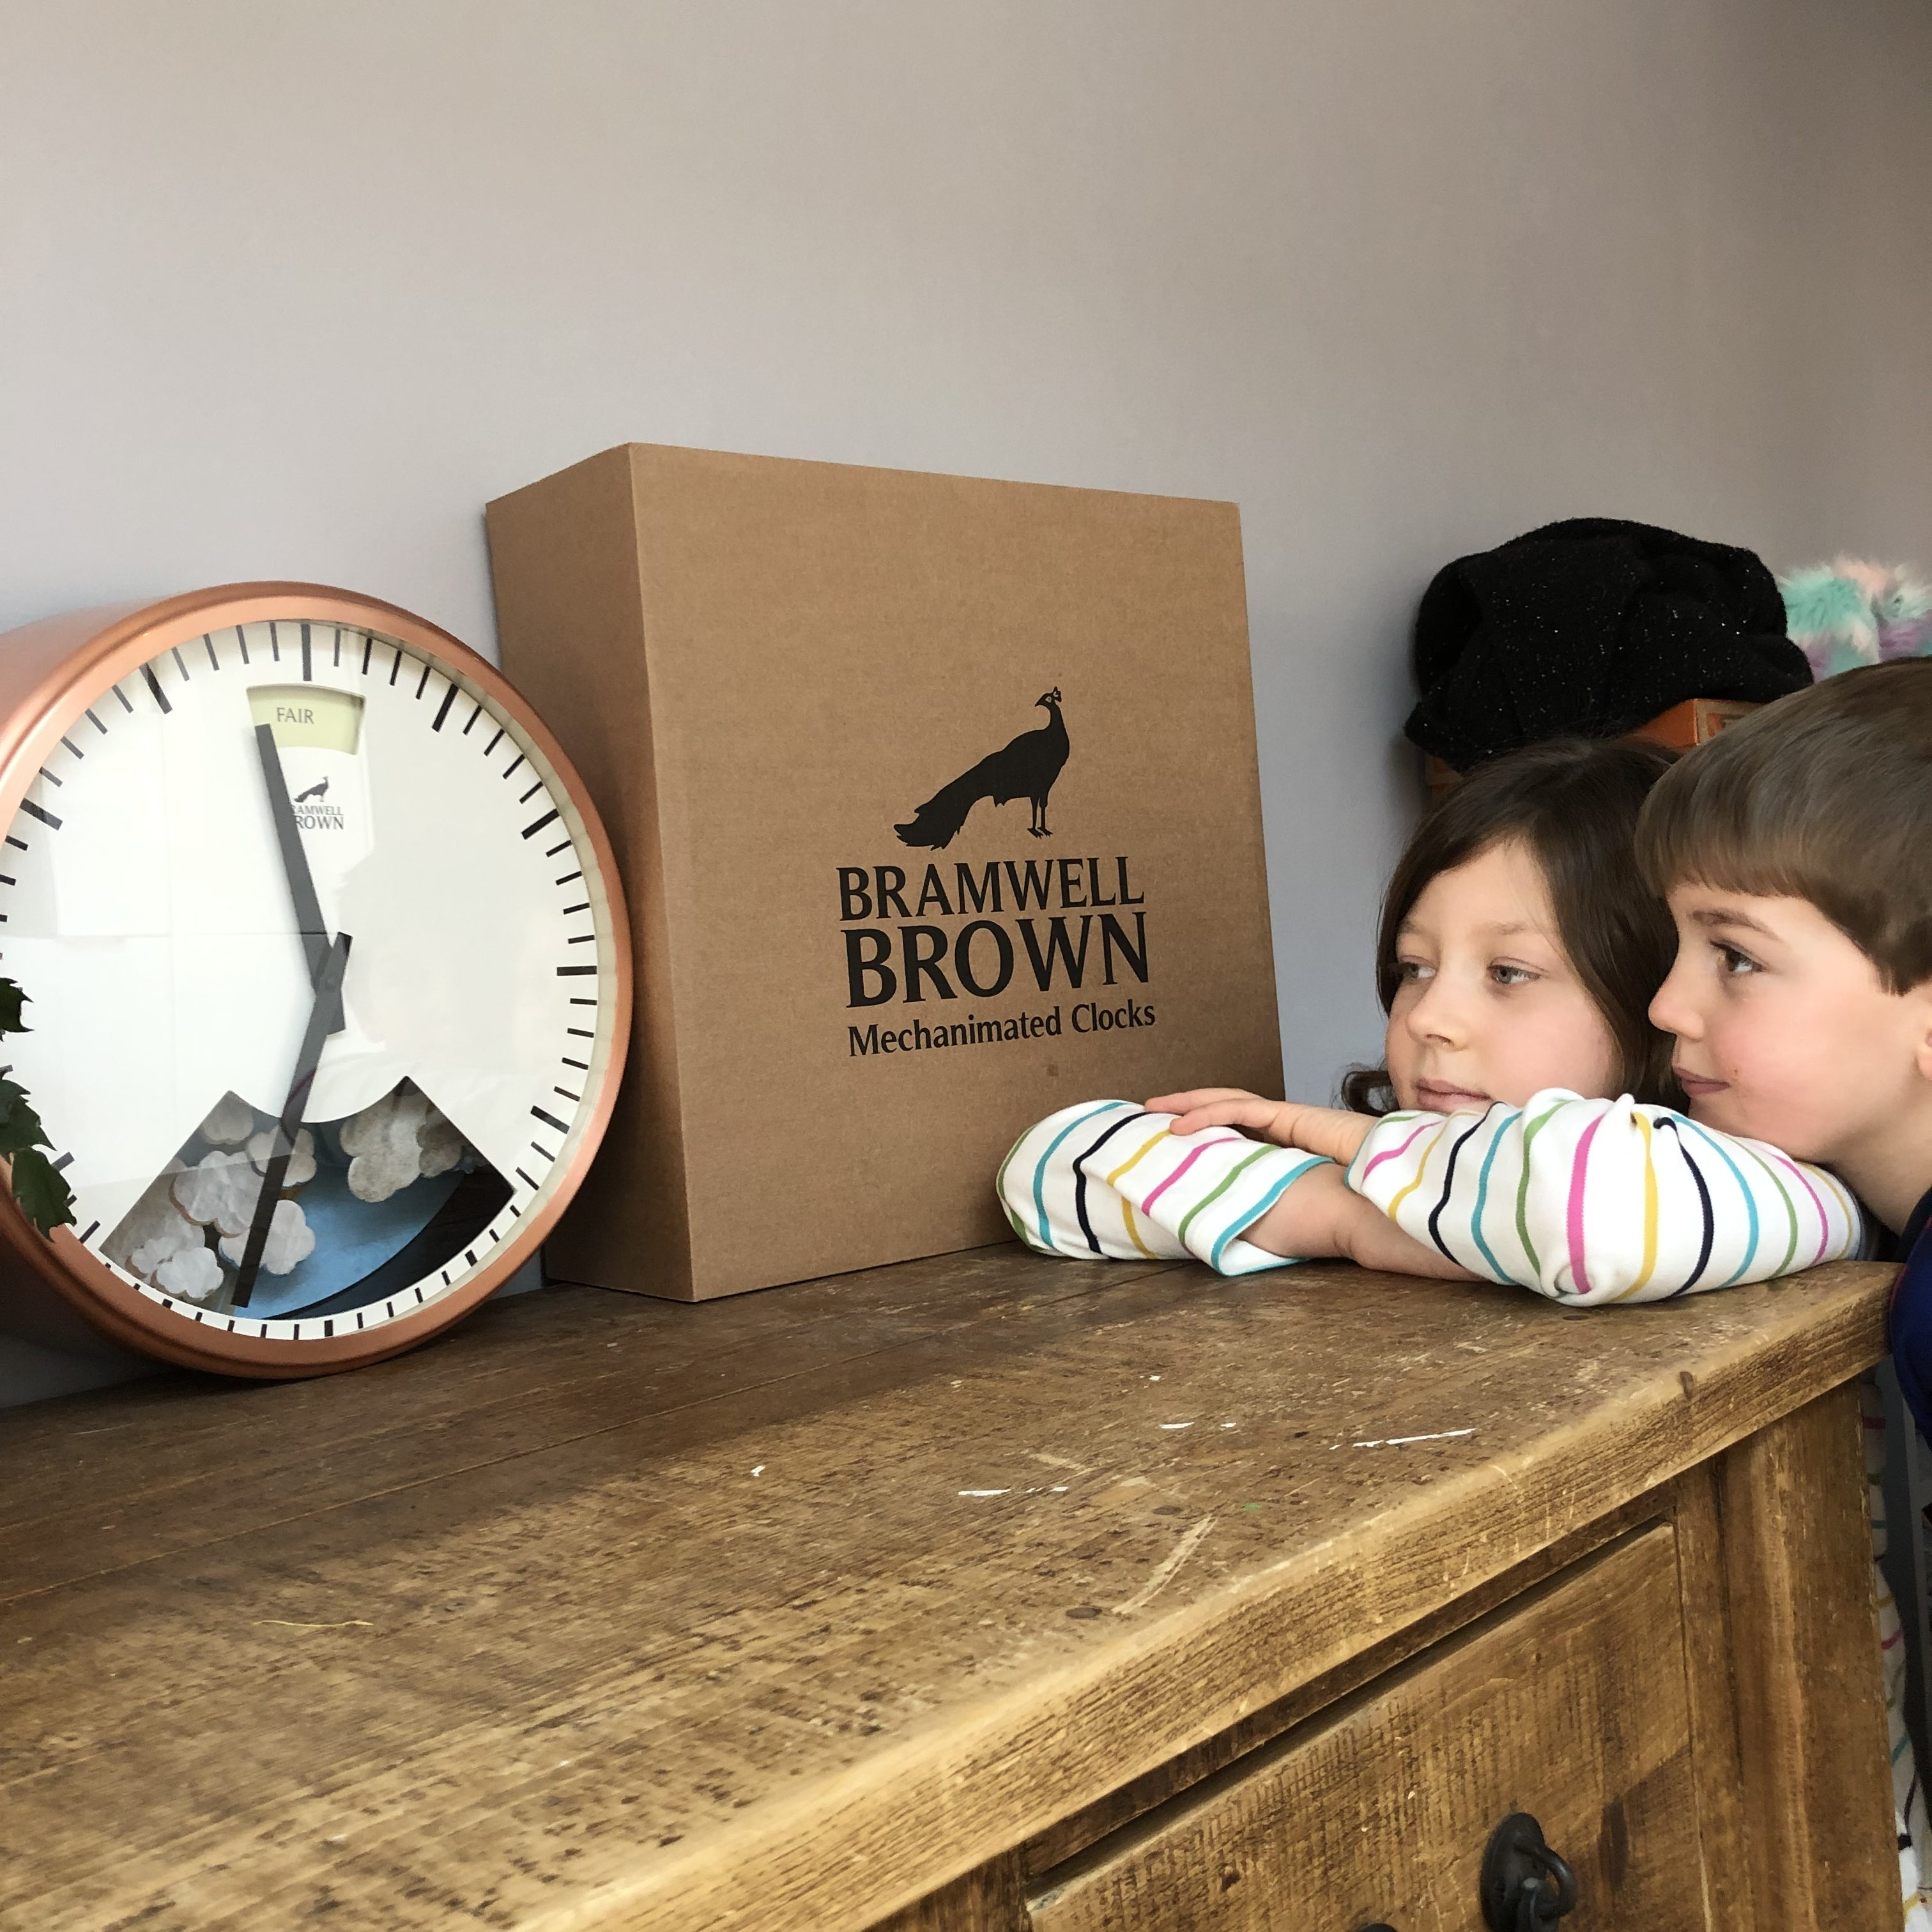 An unedited photo of my children leaning on a wooden dresser, looking at a clock that is also a barometer.